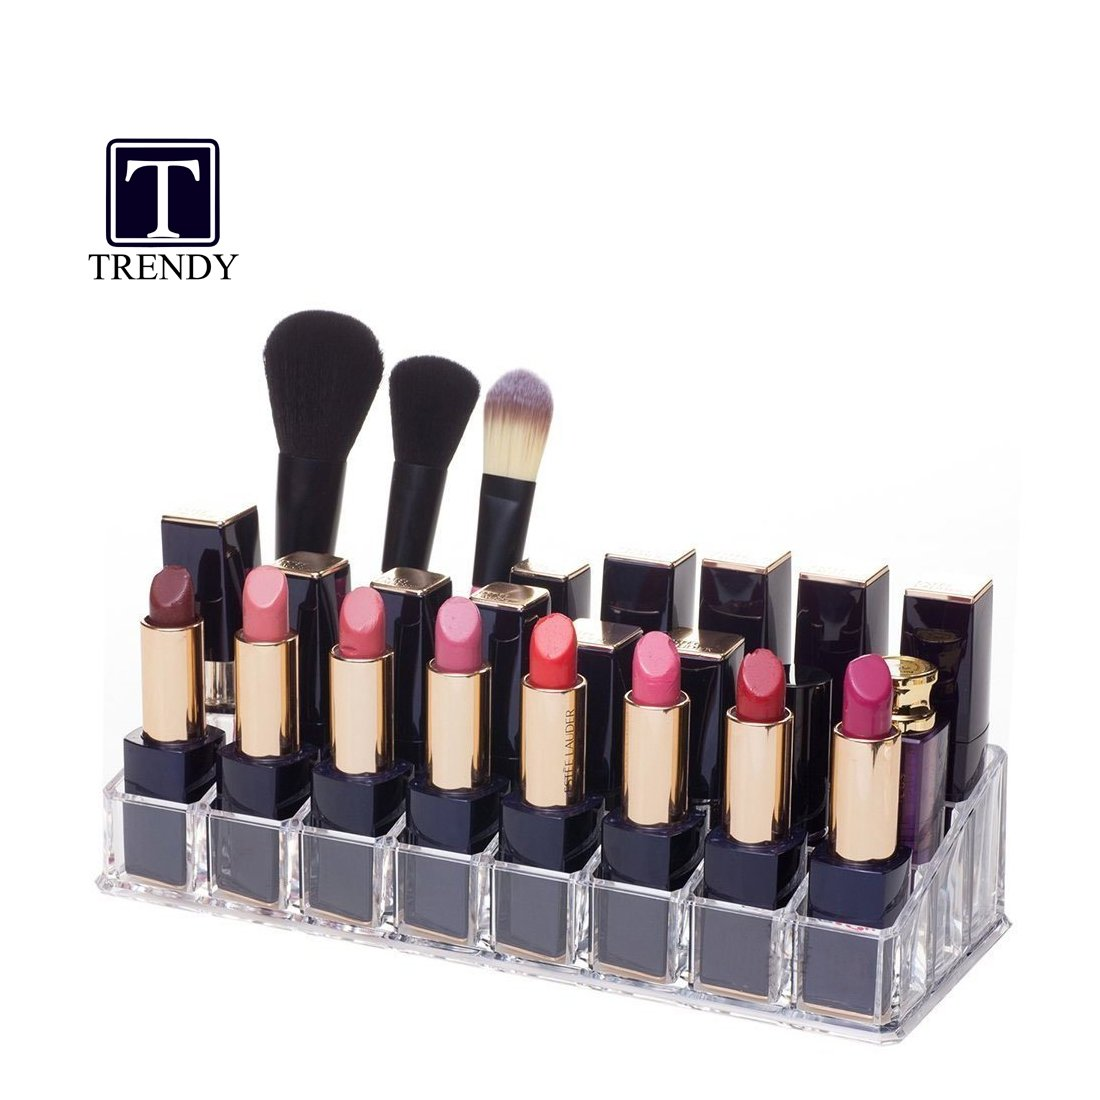 TRENDY Tnt Makeup Toiletry Kits Organizer Compatible for Storing Lipstick/Lip Gloss/Nail polish/Jewellery/Cosmetics